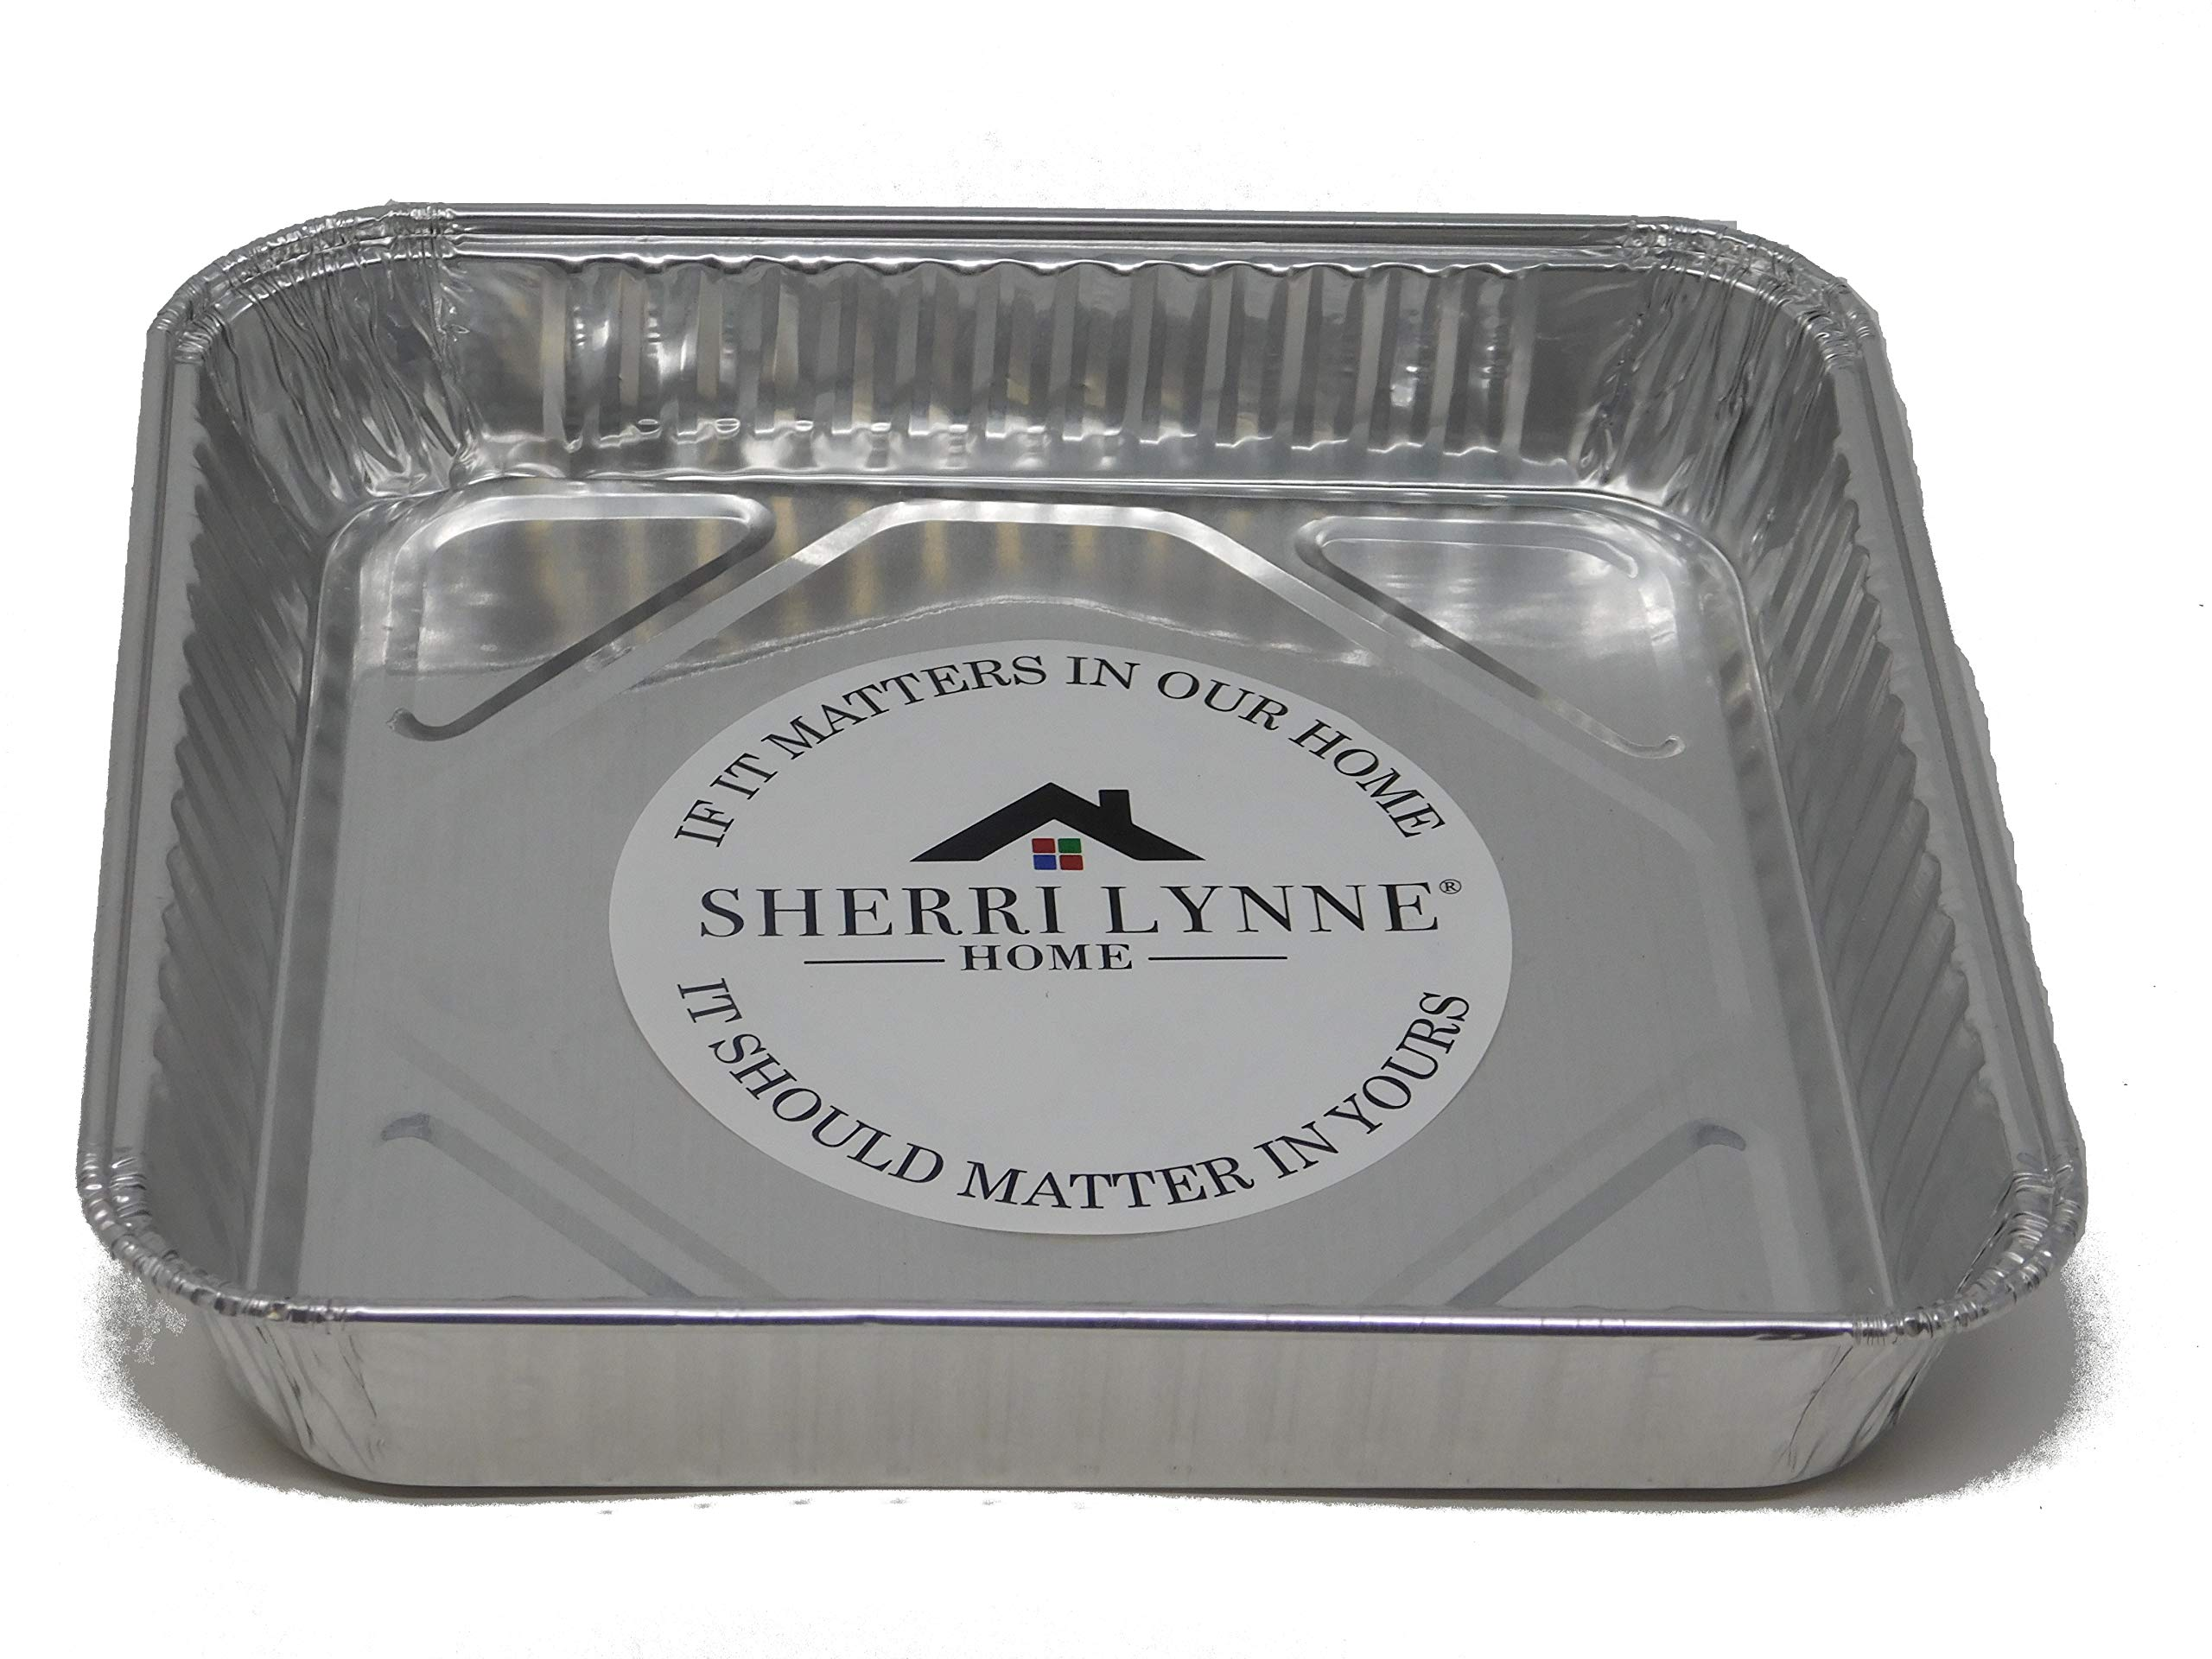 Sherri Lynne Home 8'' x 8'' Baking Pans - Disposable Aluminum Foil Baking Tins, Ideal for Brownie, Standard Size, 30 Pack